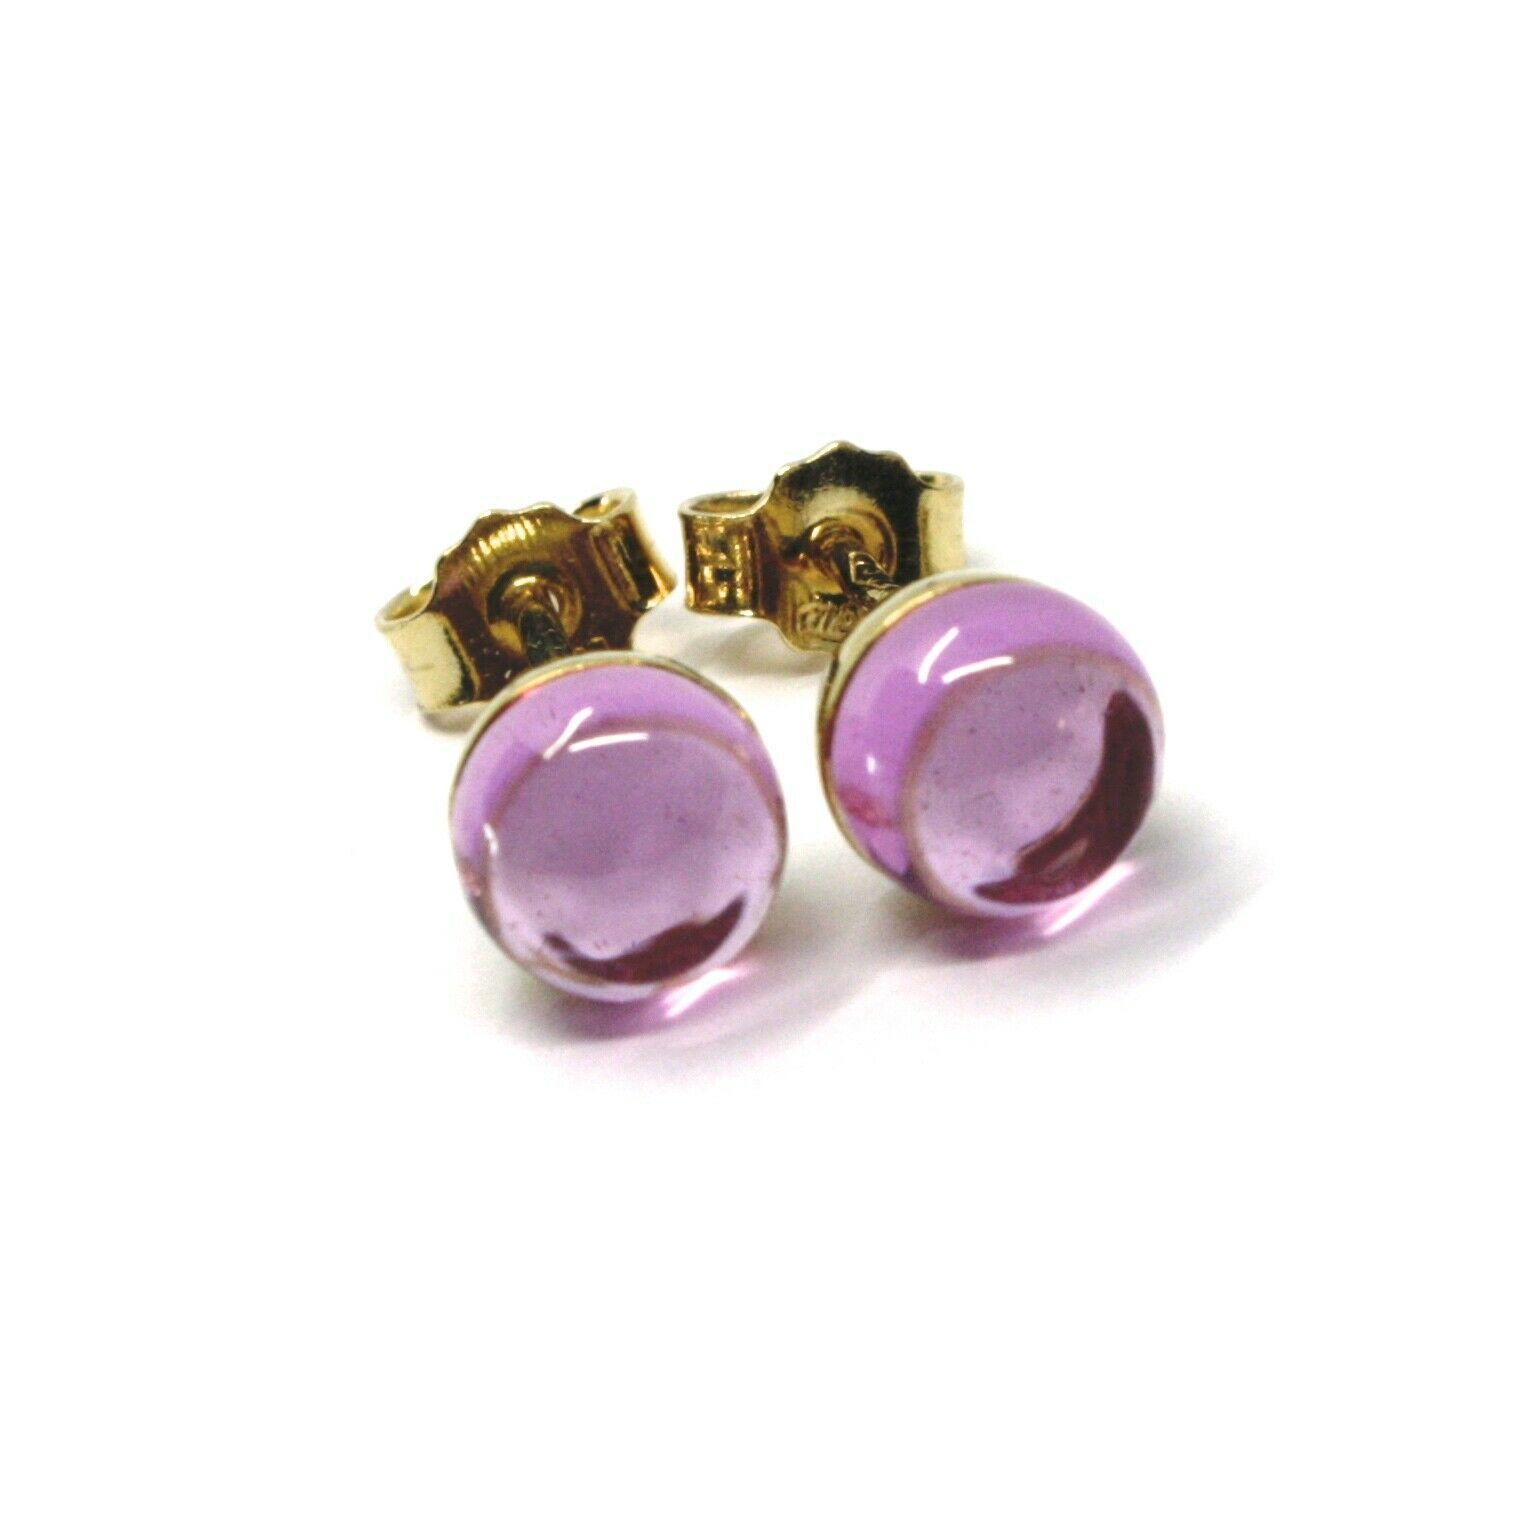 18K YELLOW GOLD BUTTON LOBE EARRINGS, CABOCHON PINK TOURMALINE DIAMETER 6mm